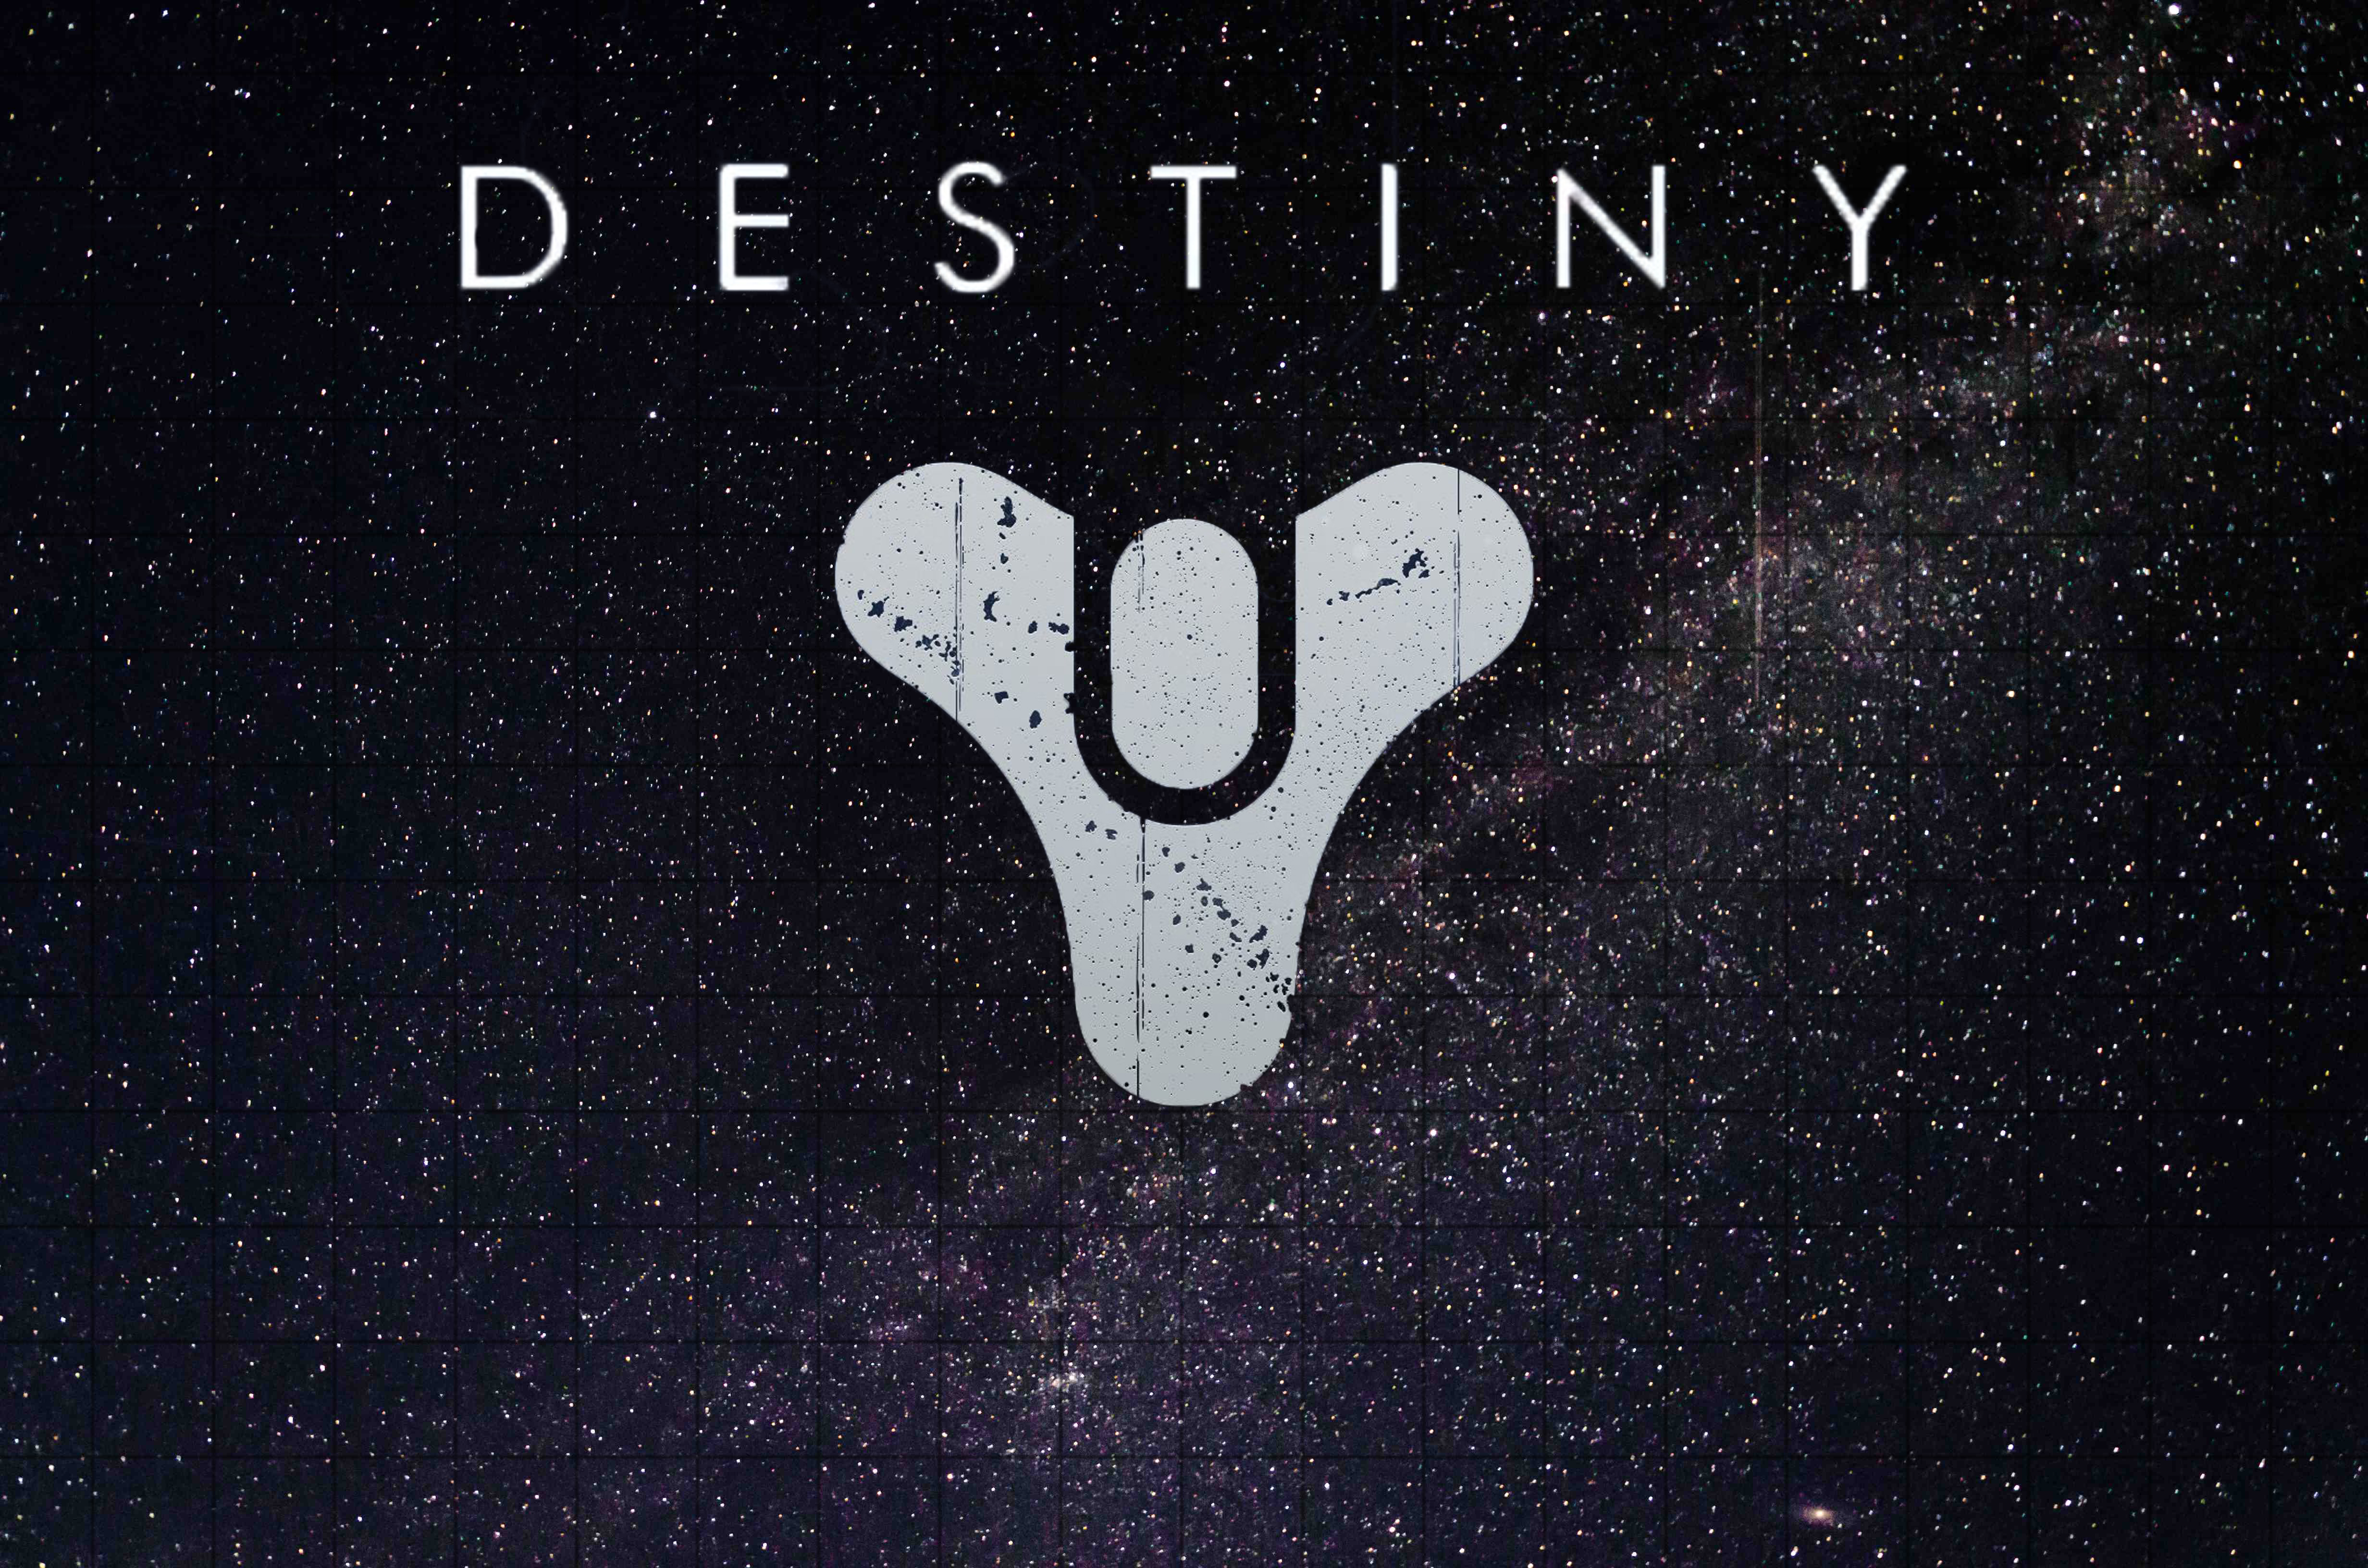 destiny wallpaper hd reddit